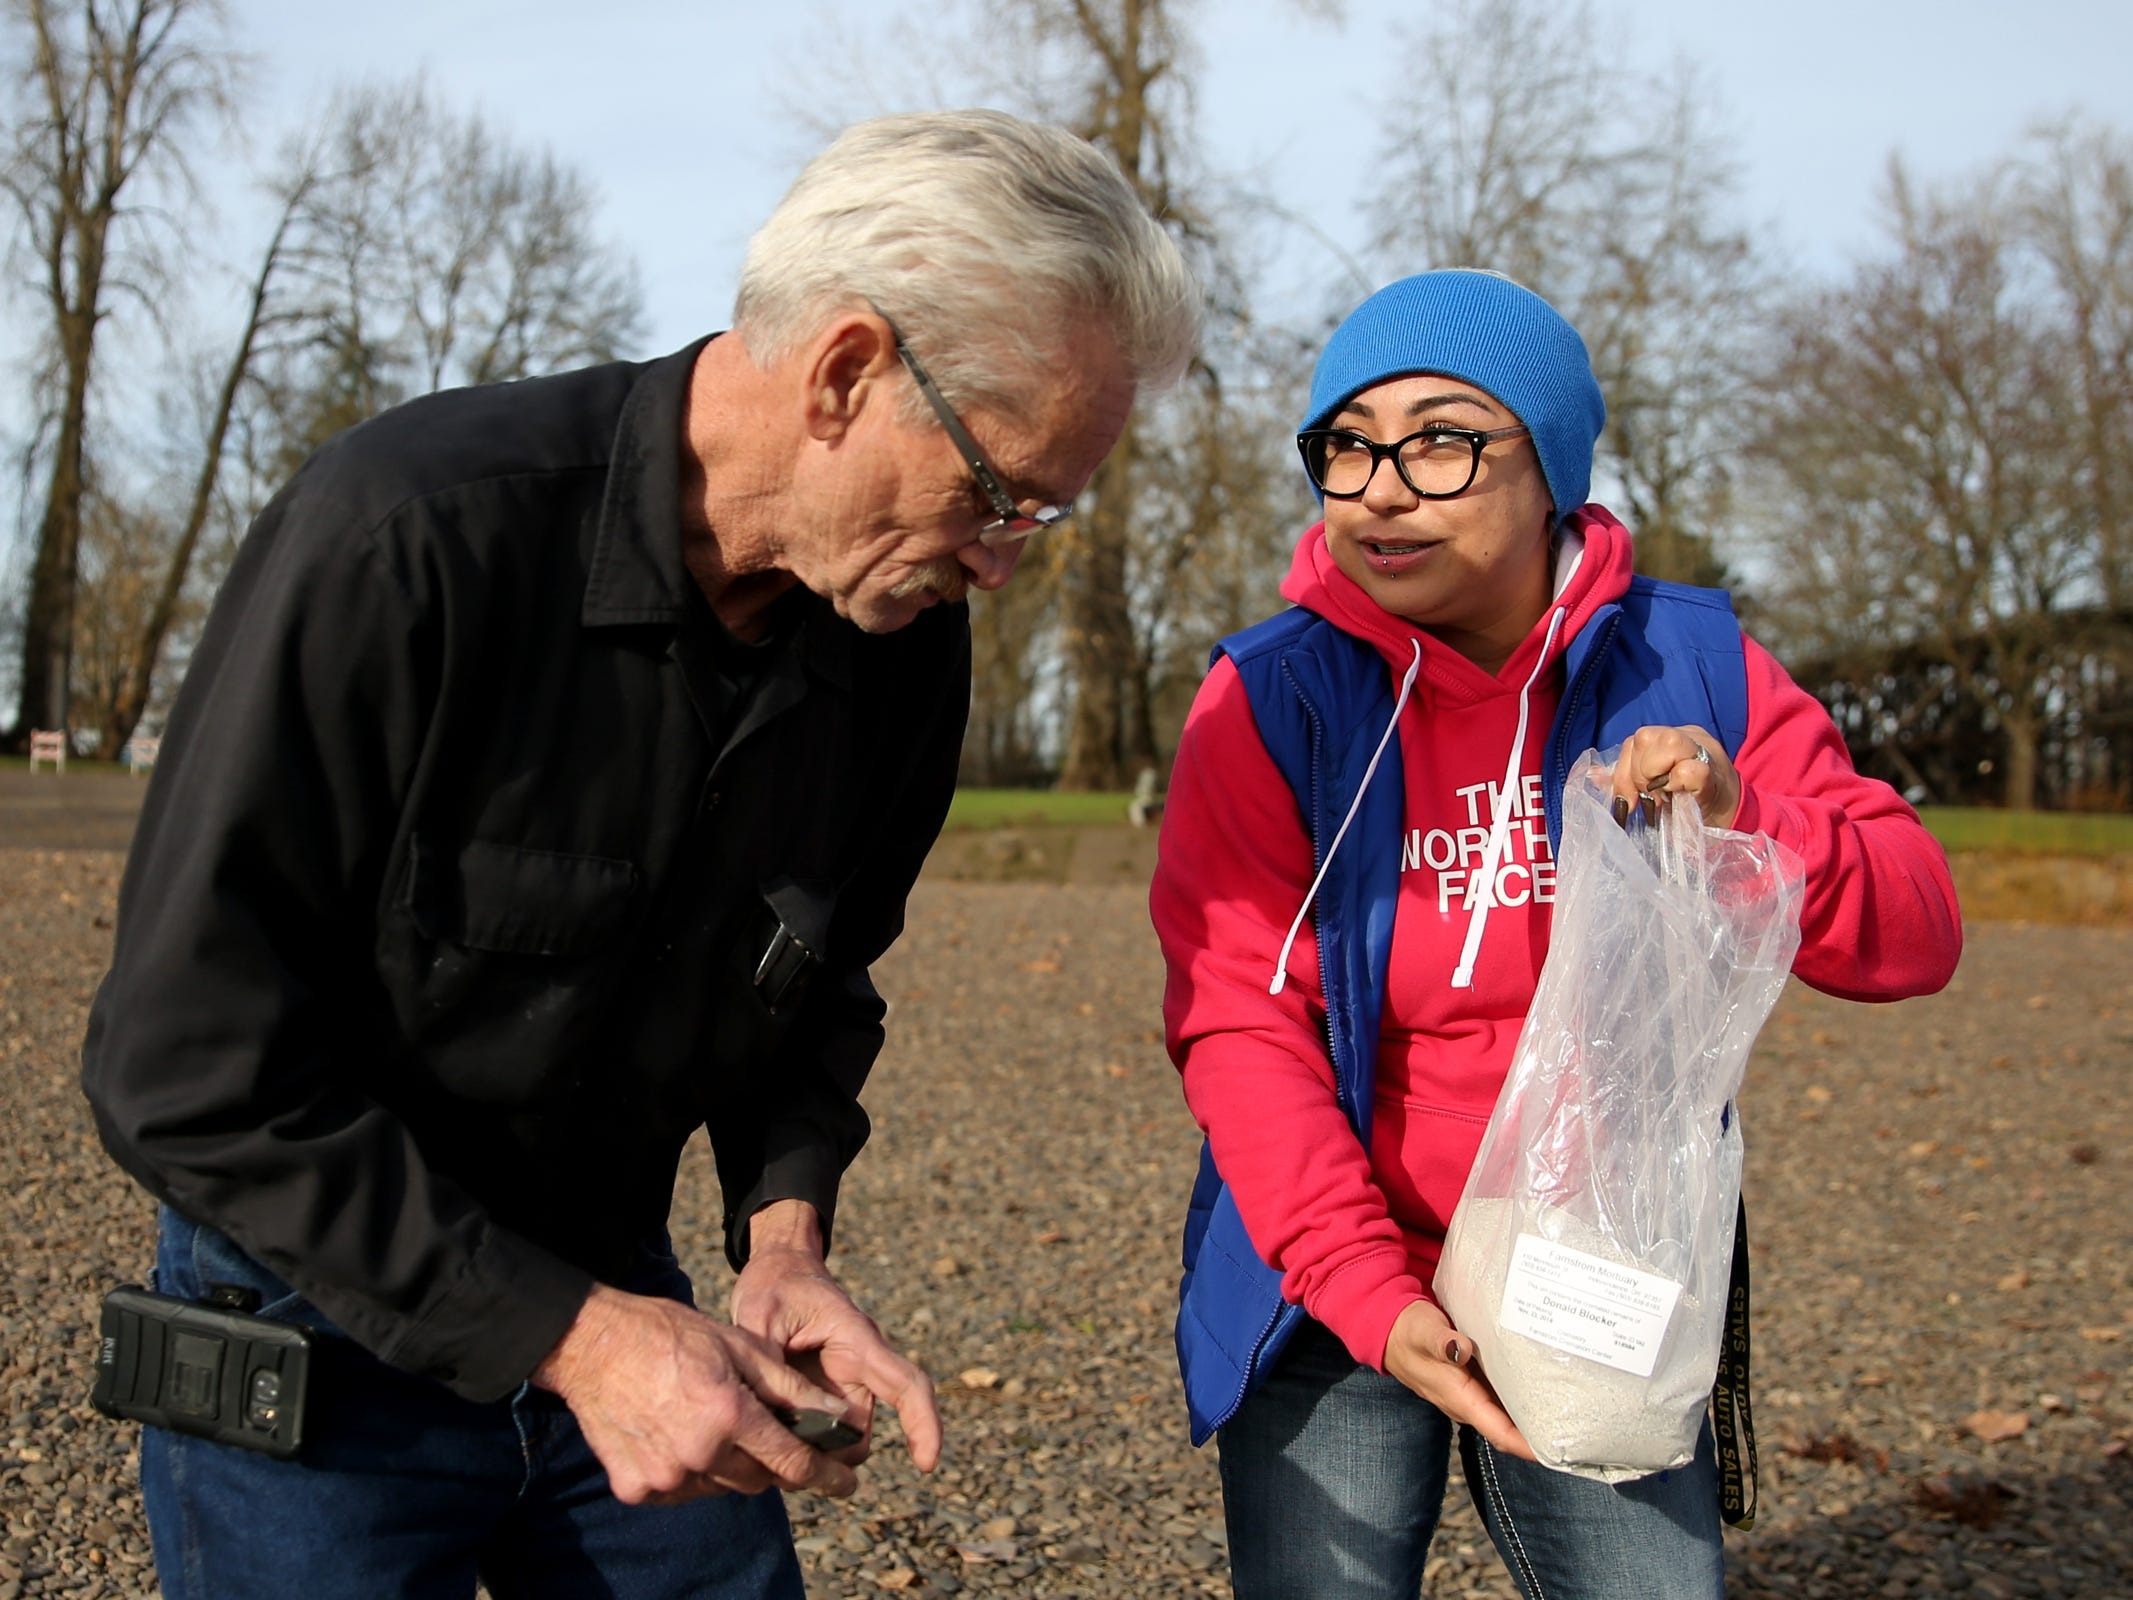 Carolina Johnson, a manager at a West Salem Subway, and Richard Blocker, 61, of Vancouver, Wash., prepare to spread the ashes of Blockers' brother, Don Blocker, in the Willamette River at Wallace Marine Park in West Salem on Thursday, Dec. 13, 2018. Blocker lived in the park for about 40 years. He died the day after Thanksgiving, unable to get warm after falling into a pond near his tent. Johnson became friends with him when she used to give him her employee meals at Subway.